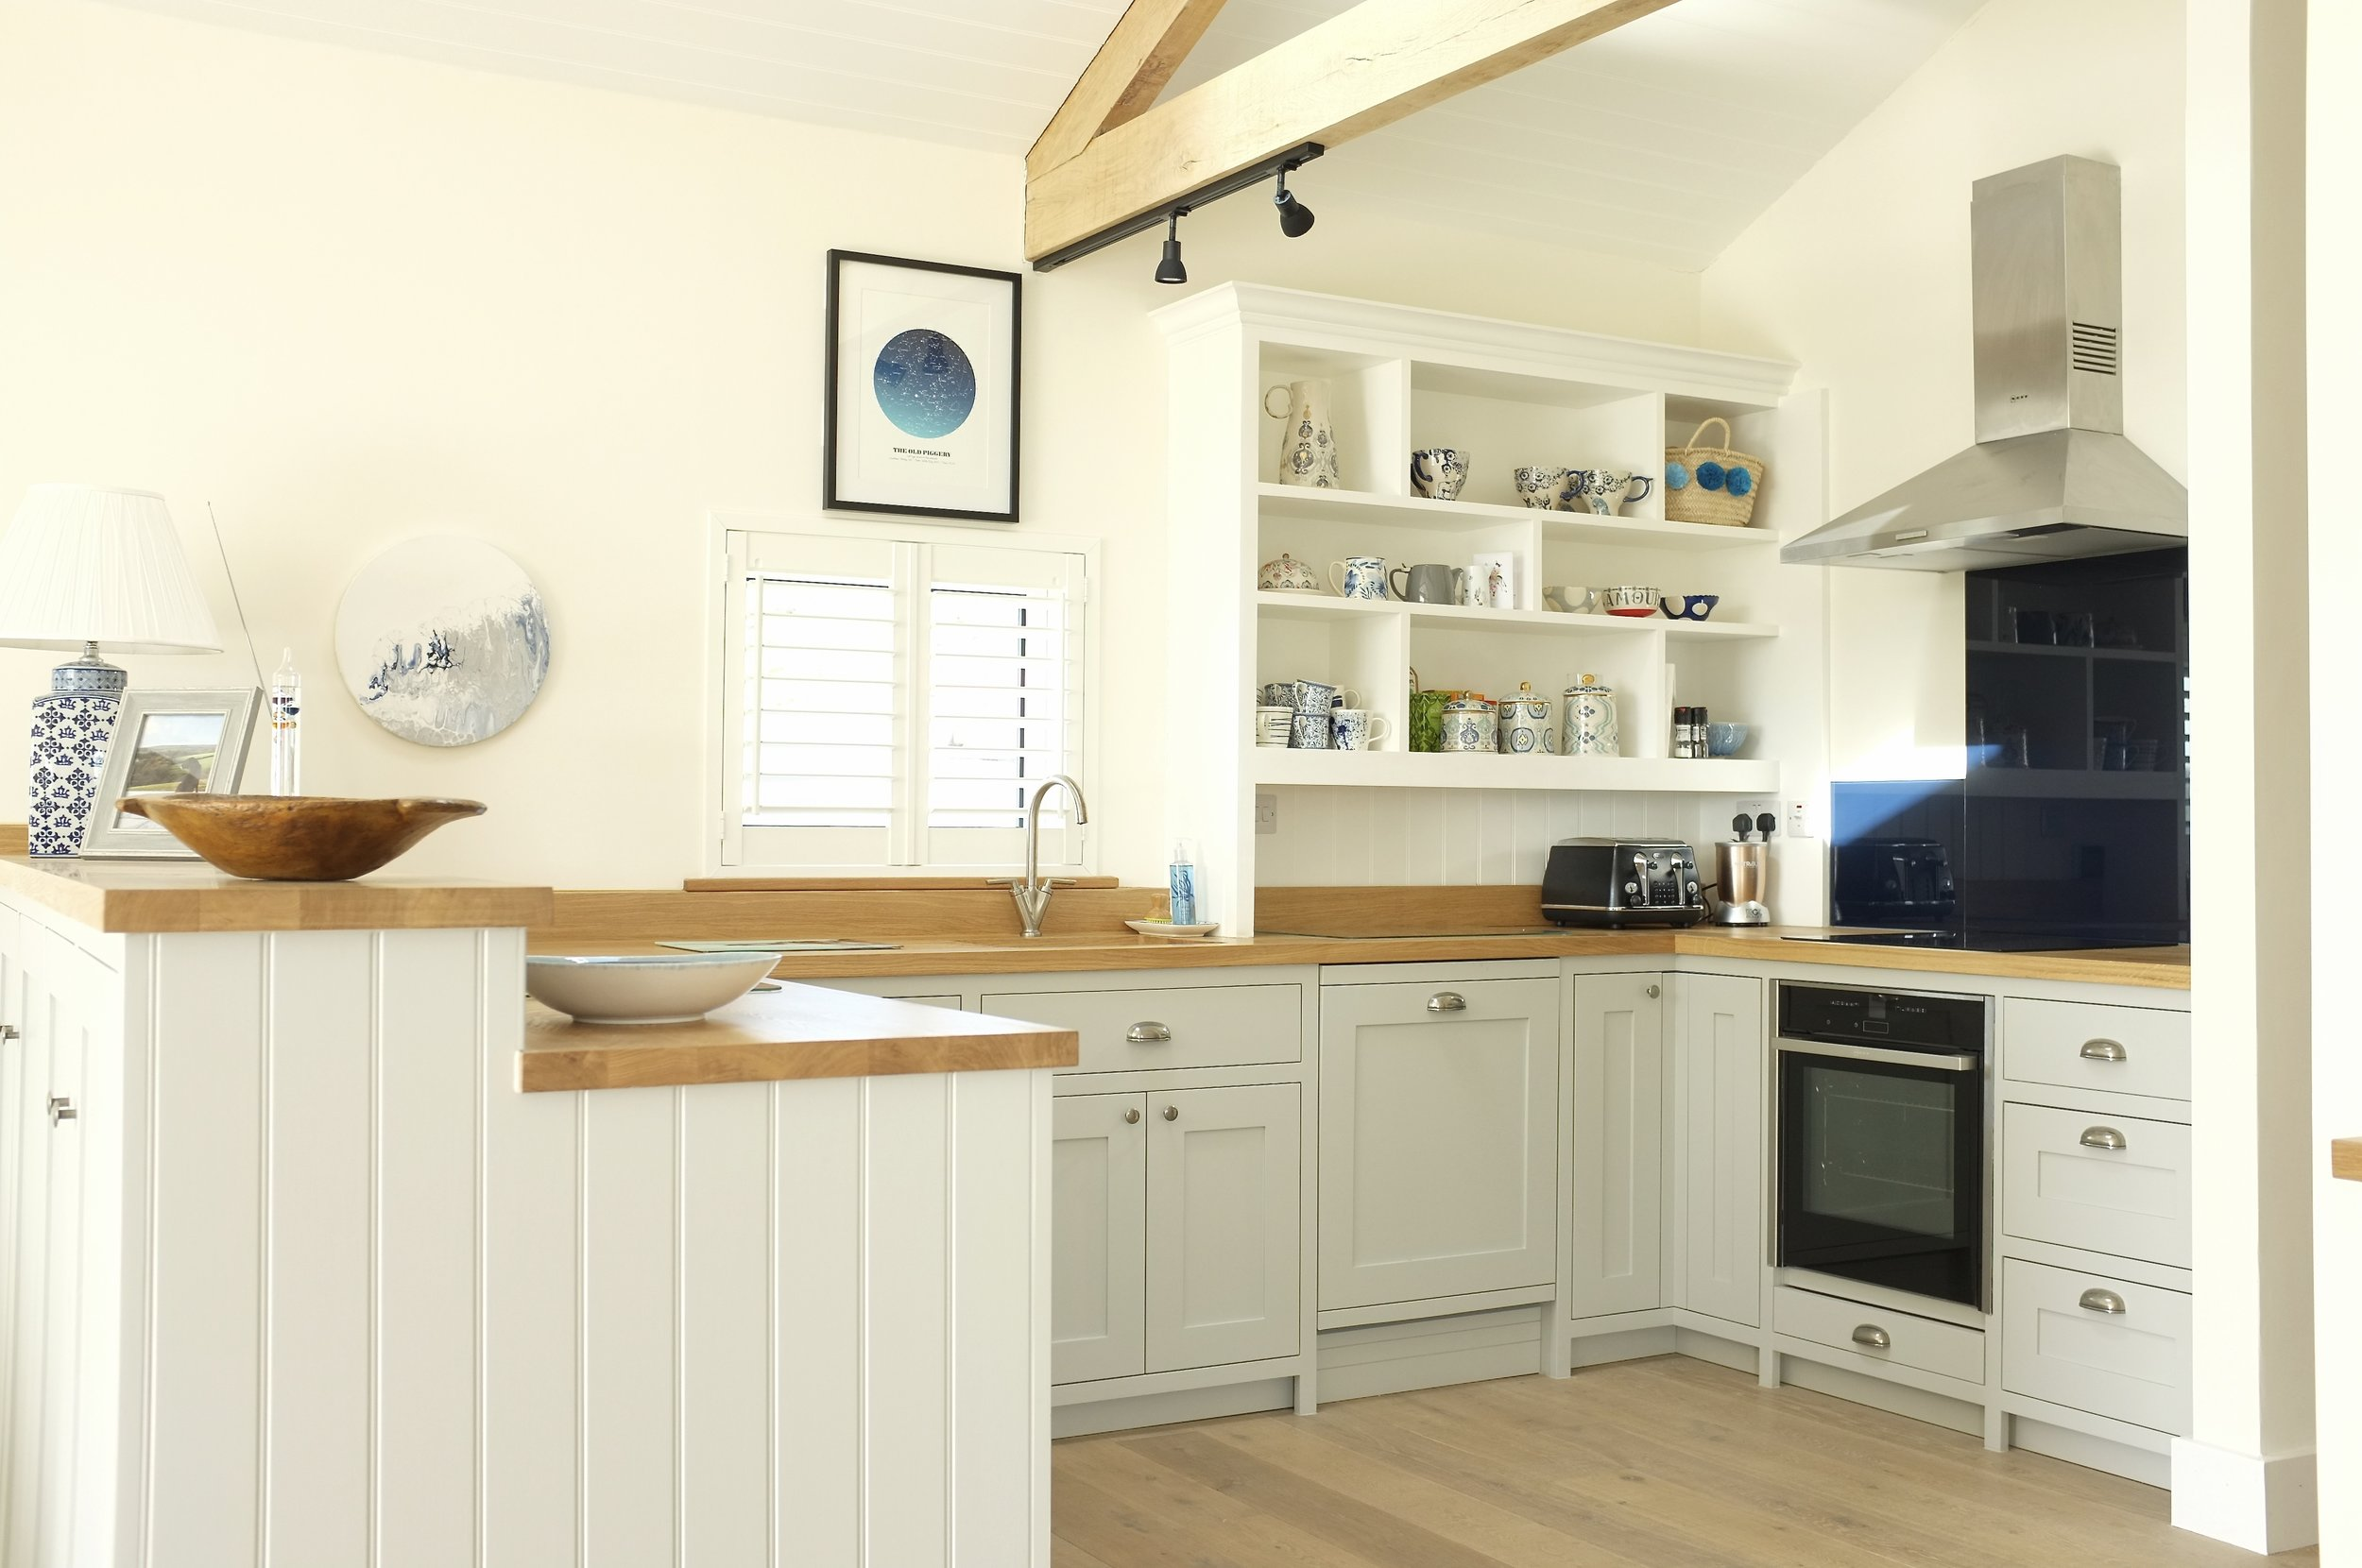 Completed Bespoke Kitchen